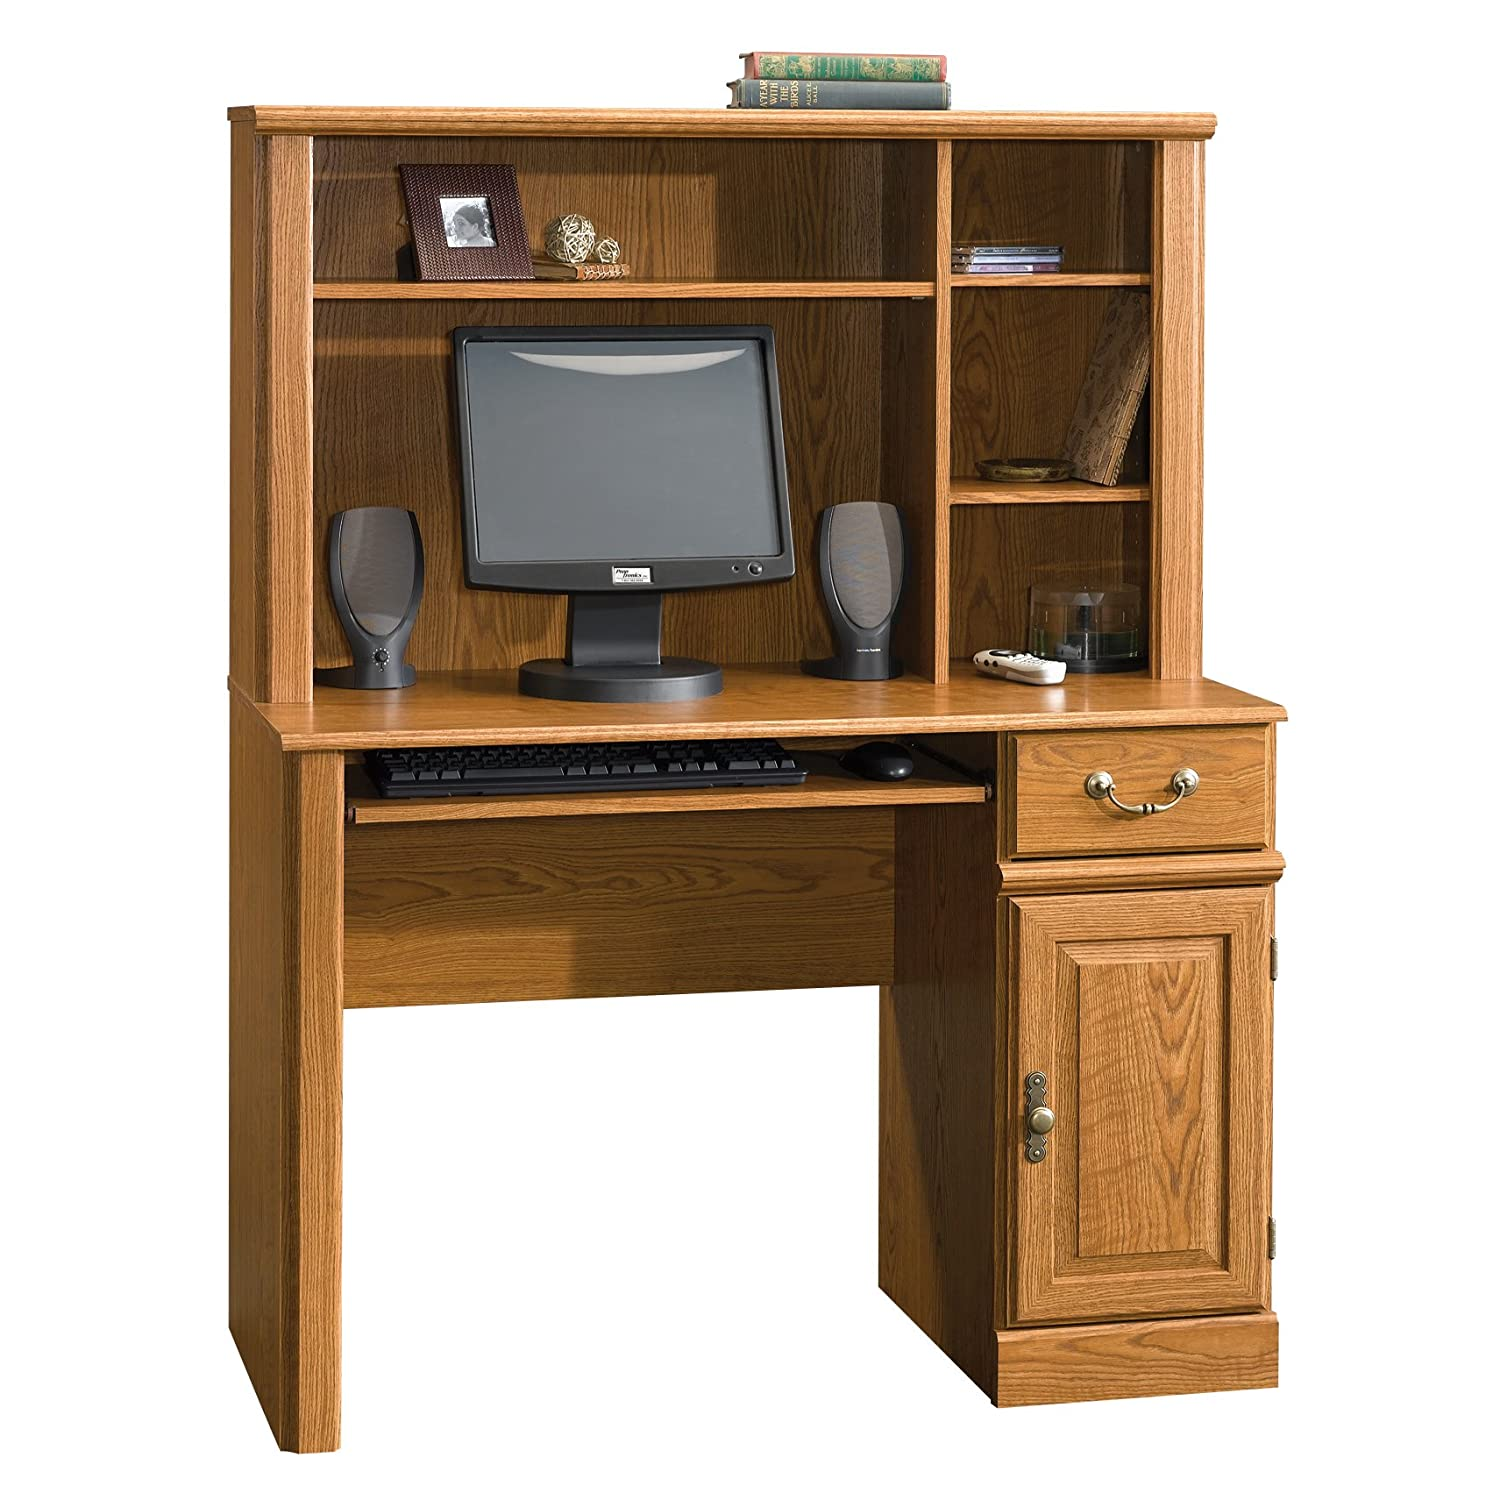 Amazon.com: Sauder Orchard Hills Computer Desk with Hutch ...